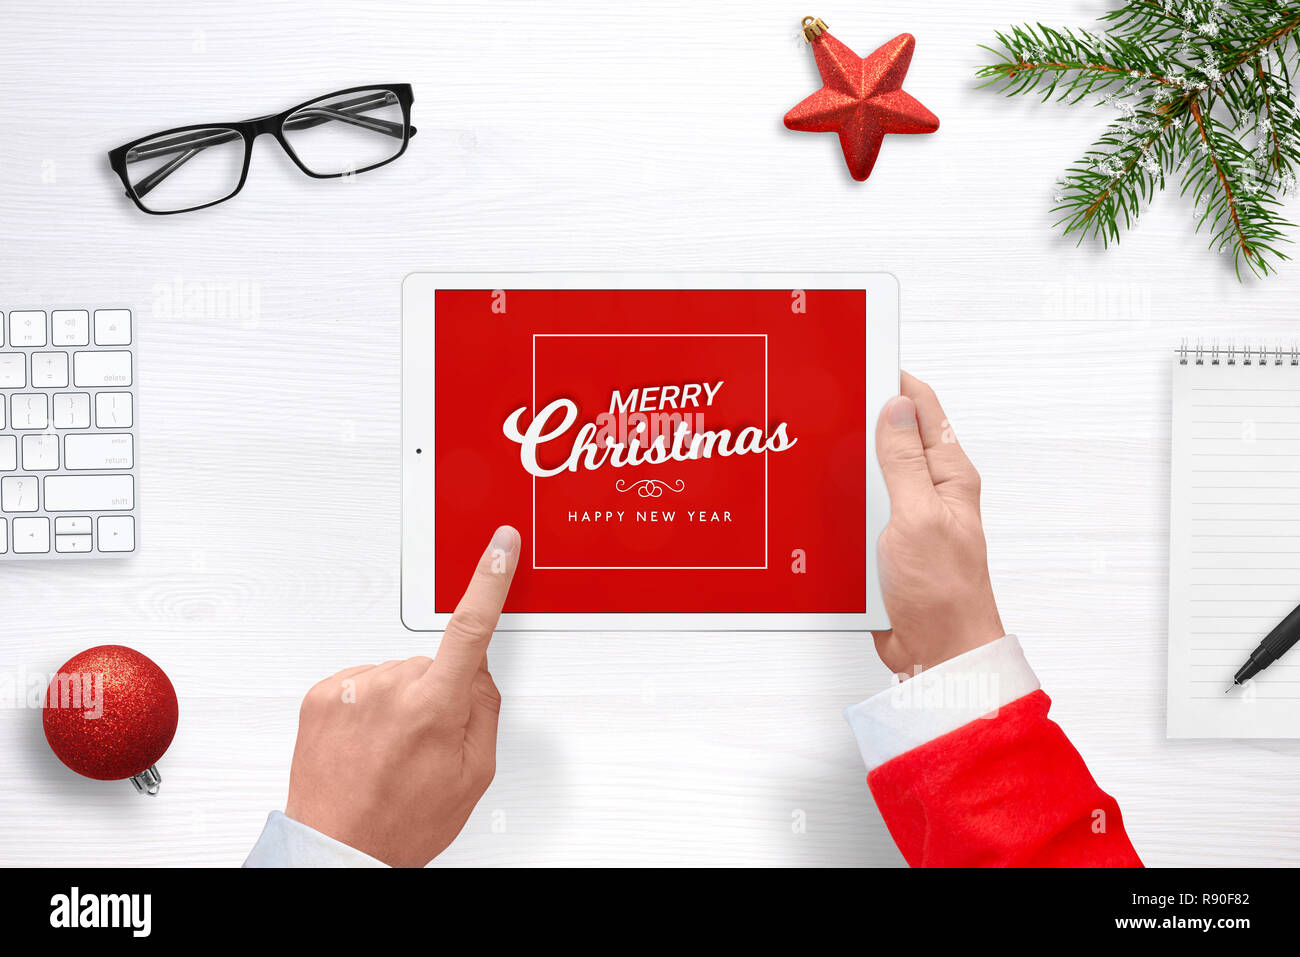 Santa work send greeting mail with tablet. Top view composition with Christmas decorations. - Stock Image